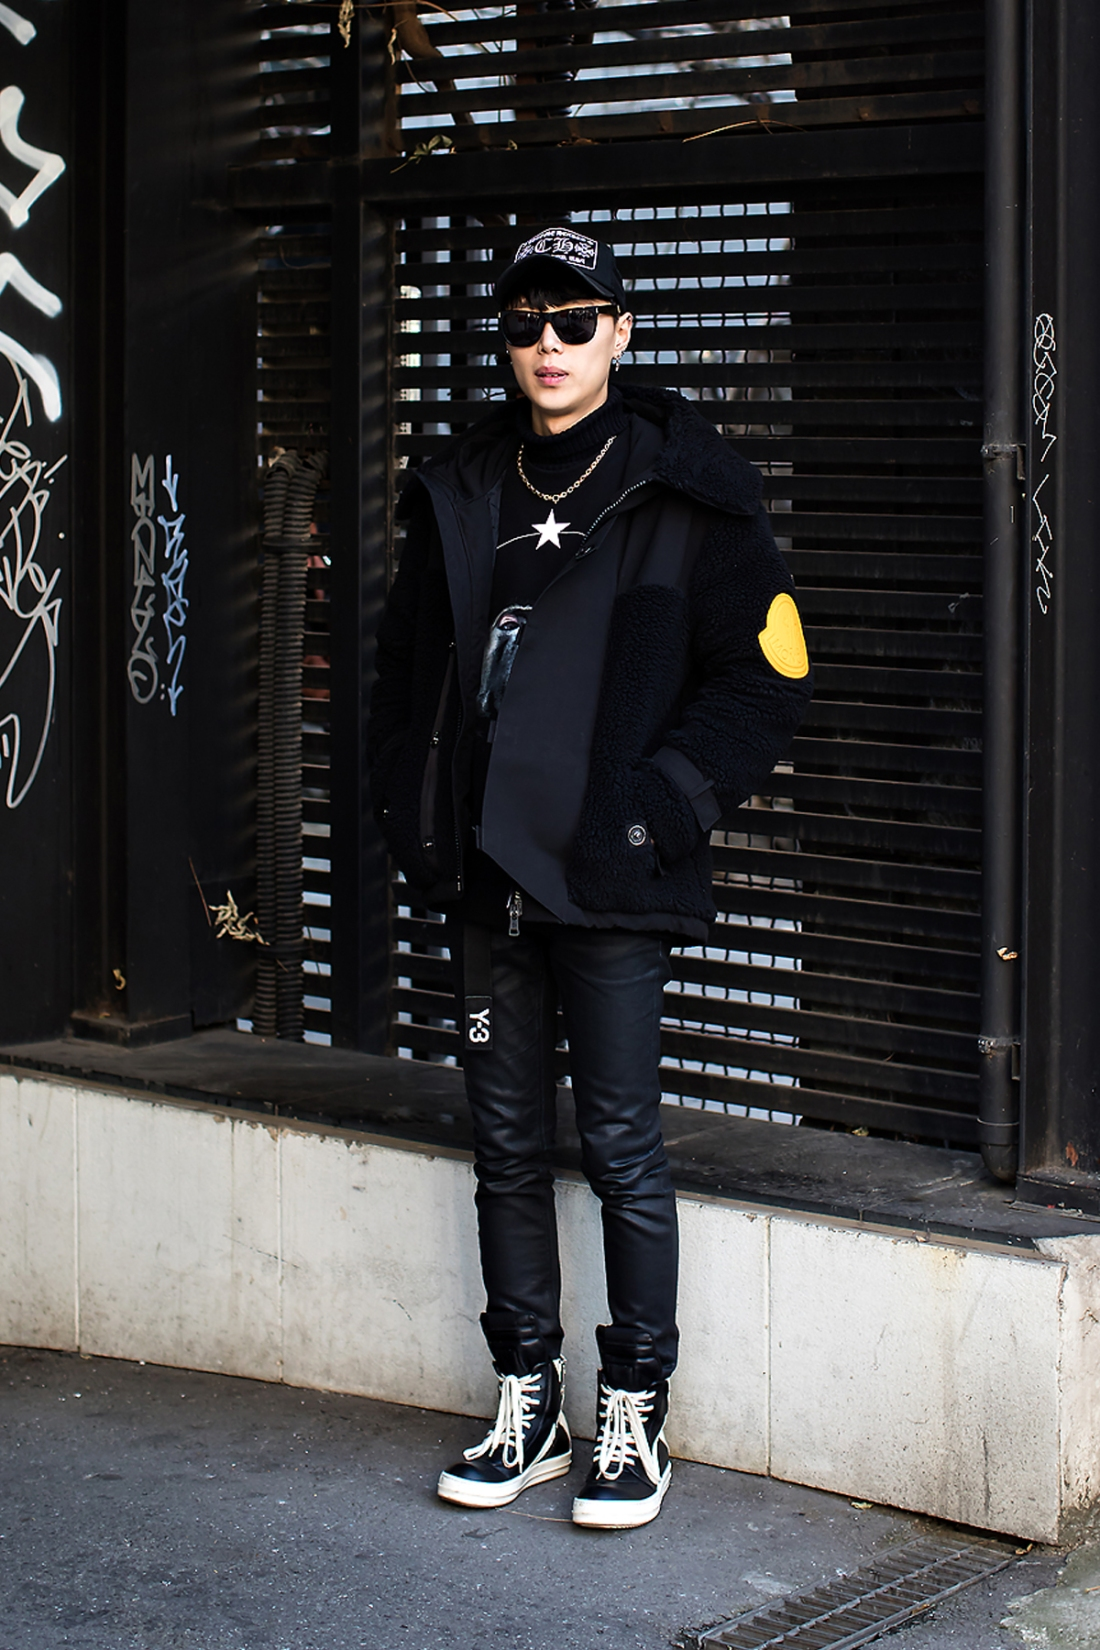 cho-yoonjin-street-fashion-2017-in-seoul